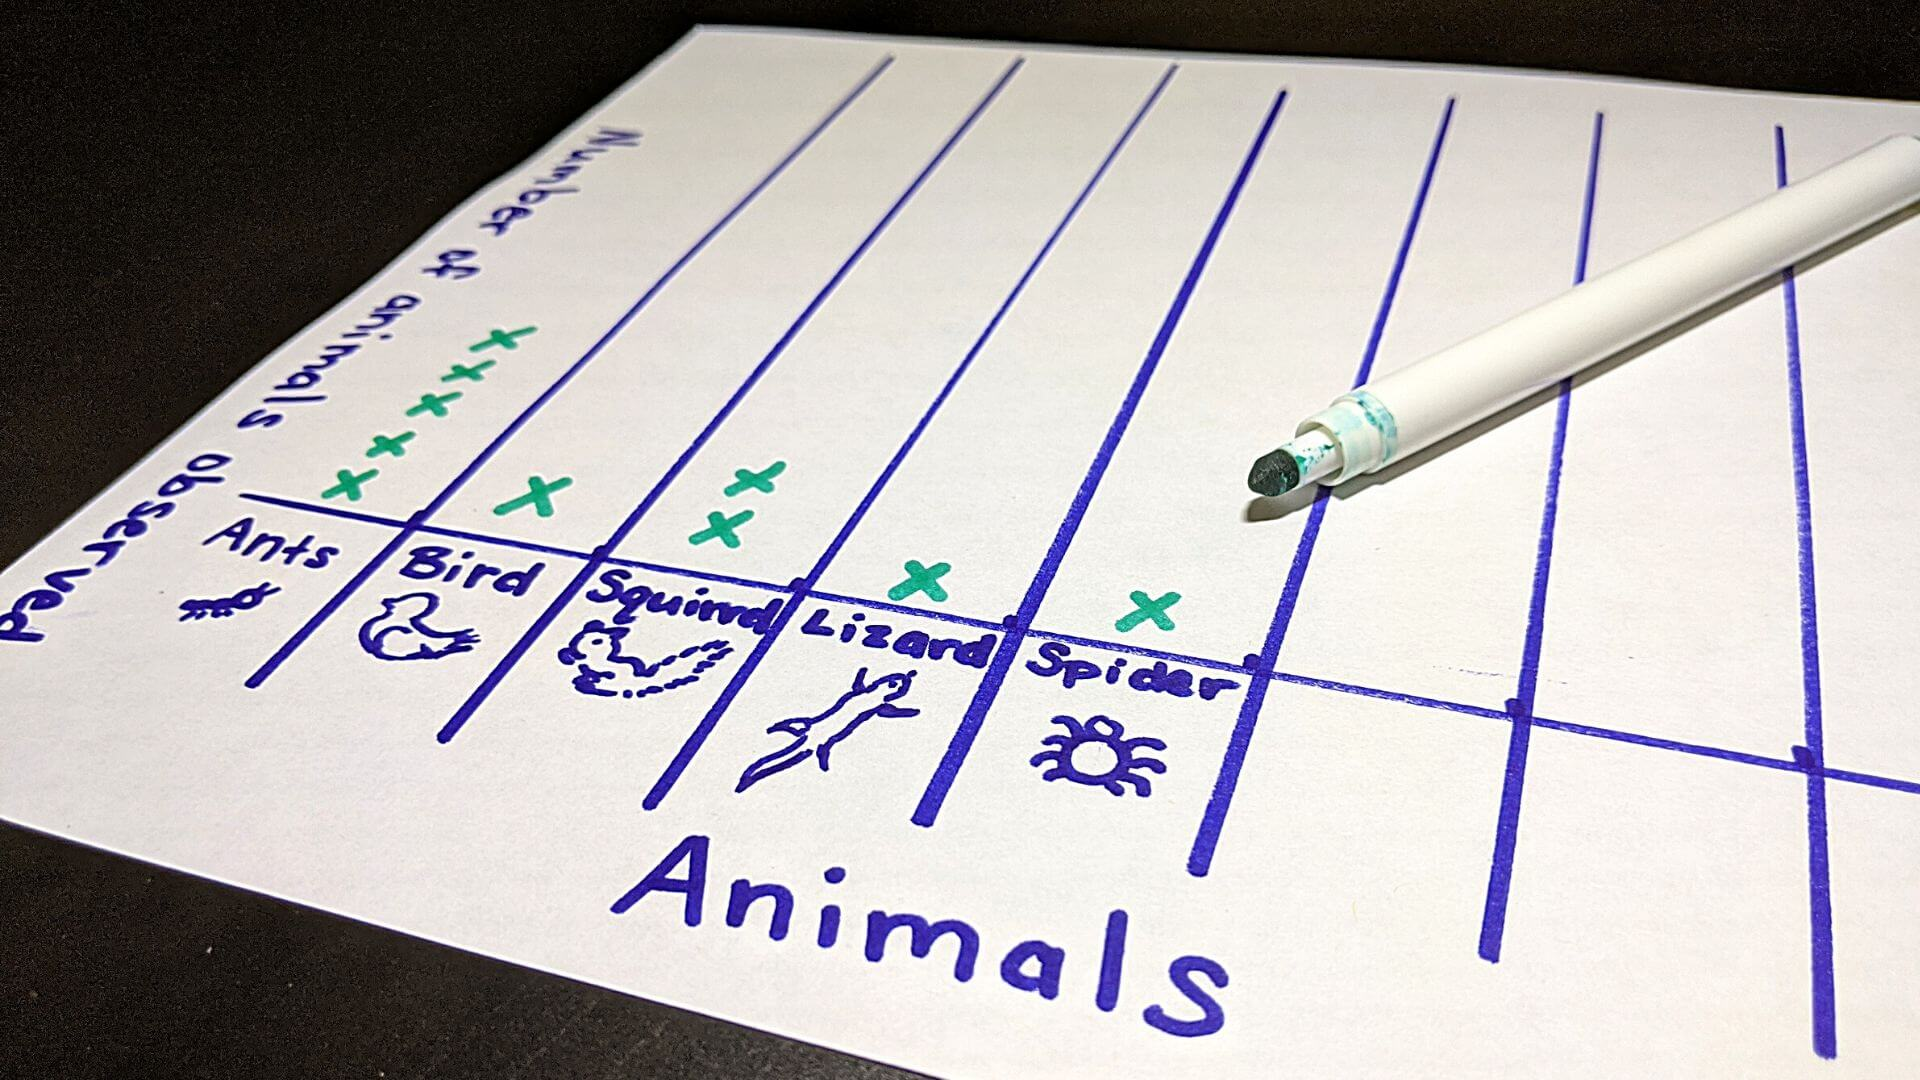 Observe your own backyard with this animal chart activity